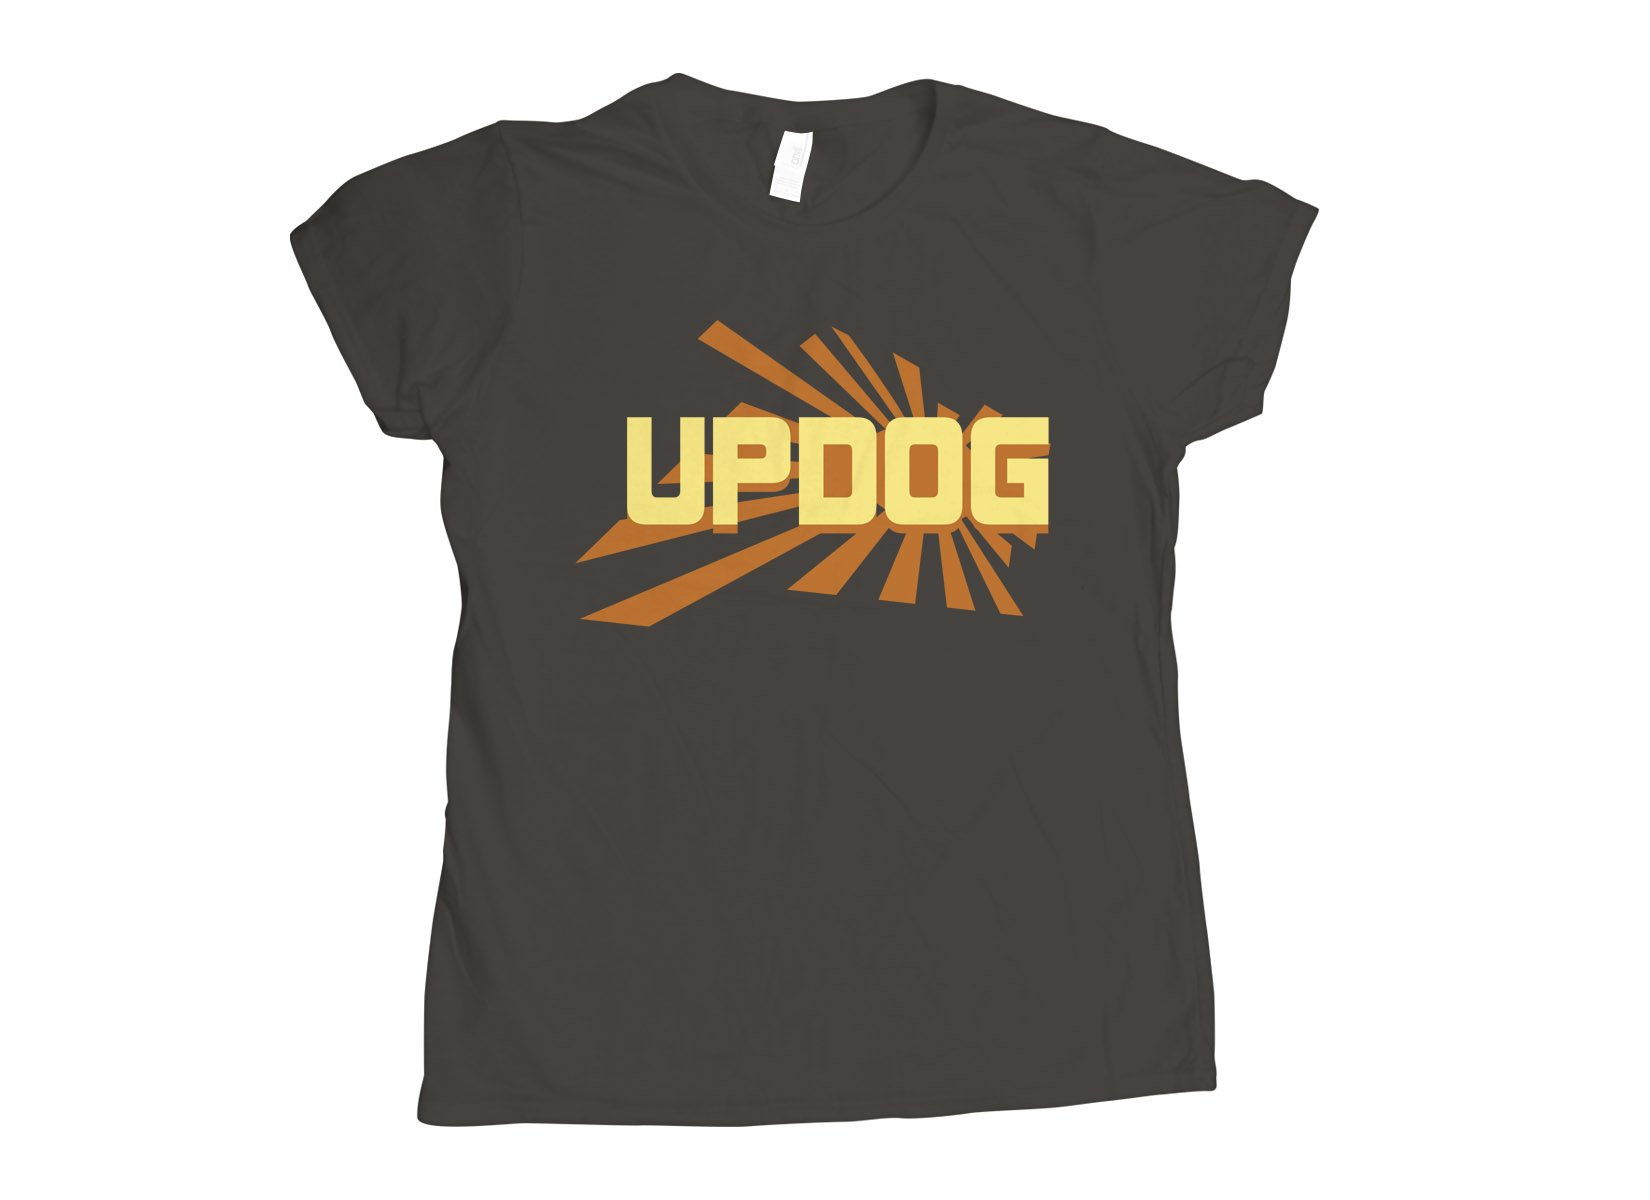 Updog on Womens T-Shirt